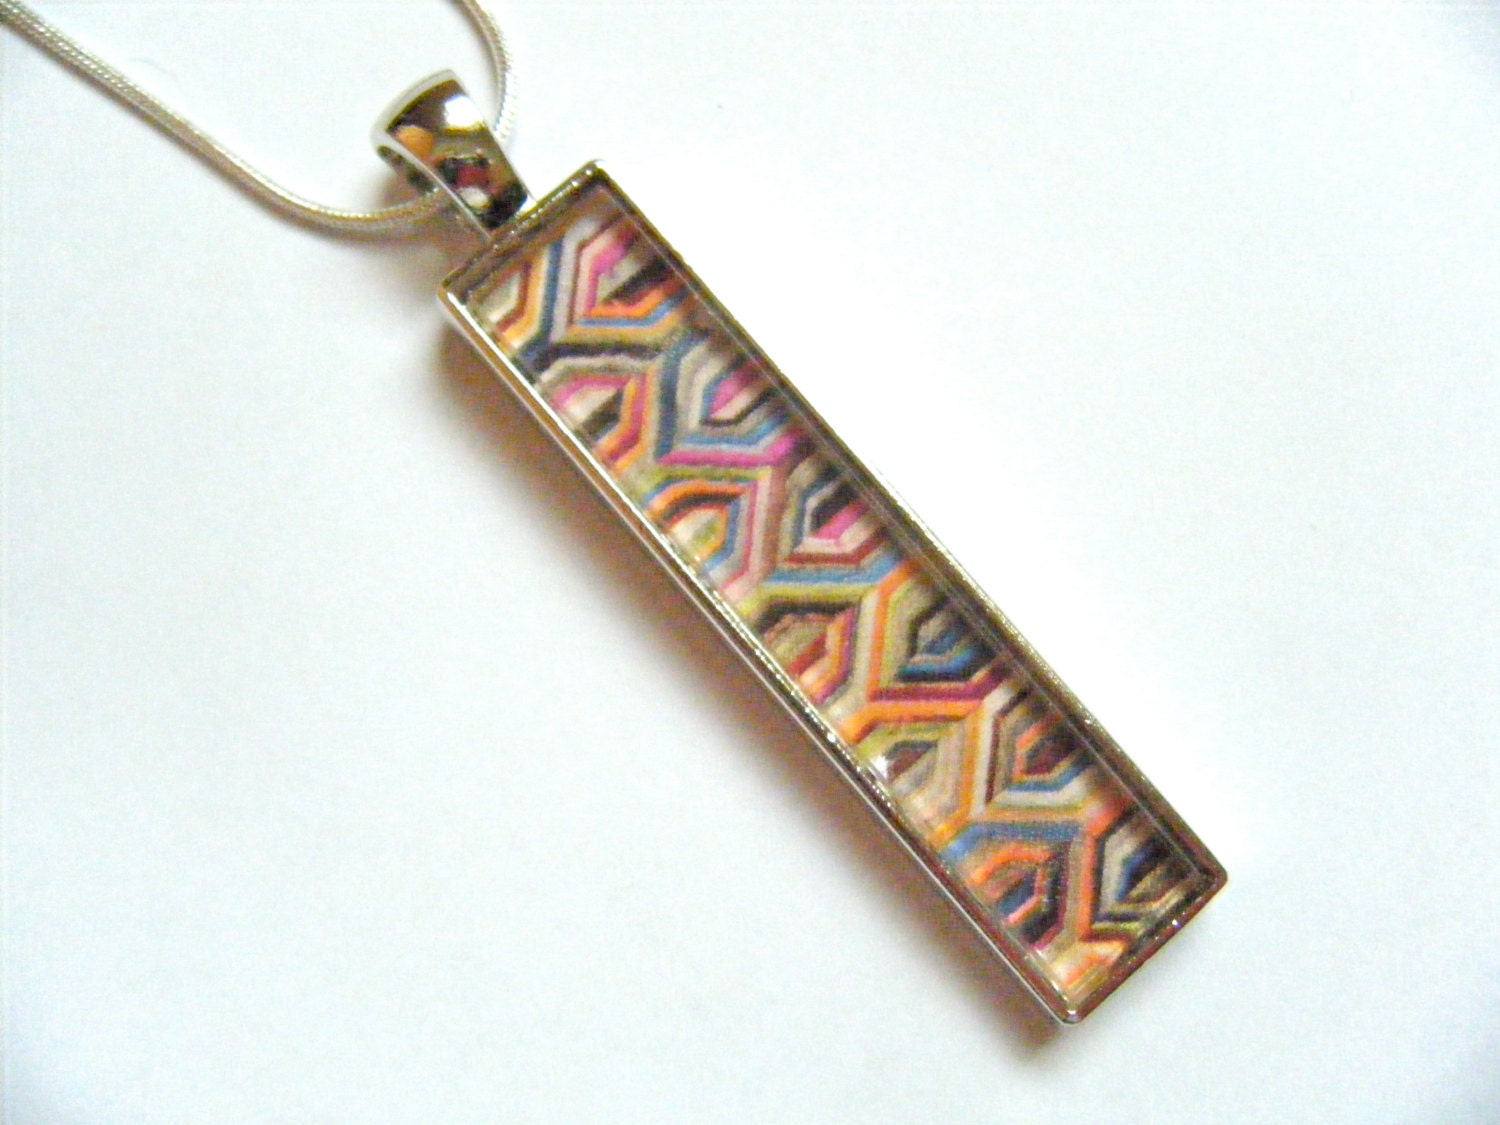 OOAK Colorful Chevron Glass Tile Necklace Pendant Modern Wearable Art Rectangle Metal Tray Recycled Repurposed Upcycled Magazine Jewelry - HeidiKindFinds